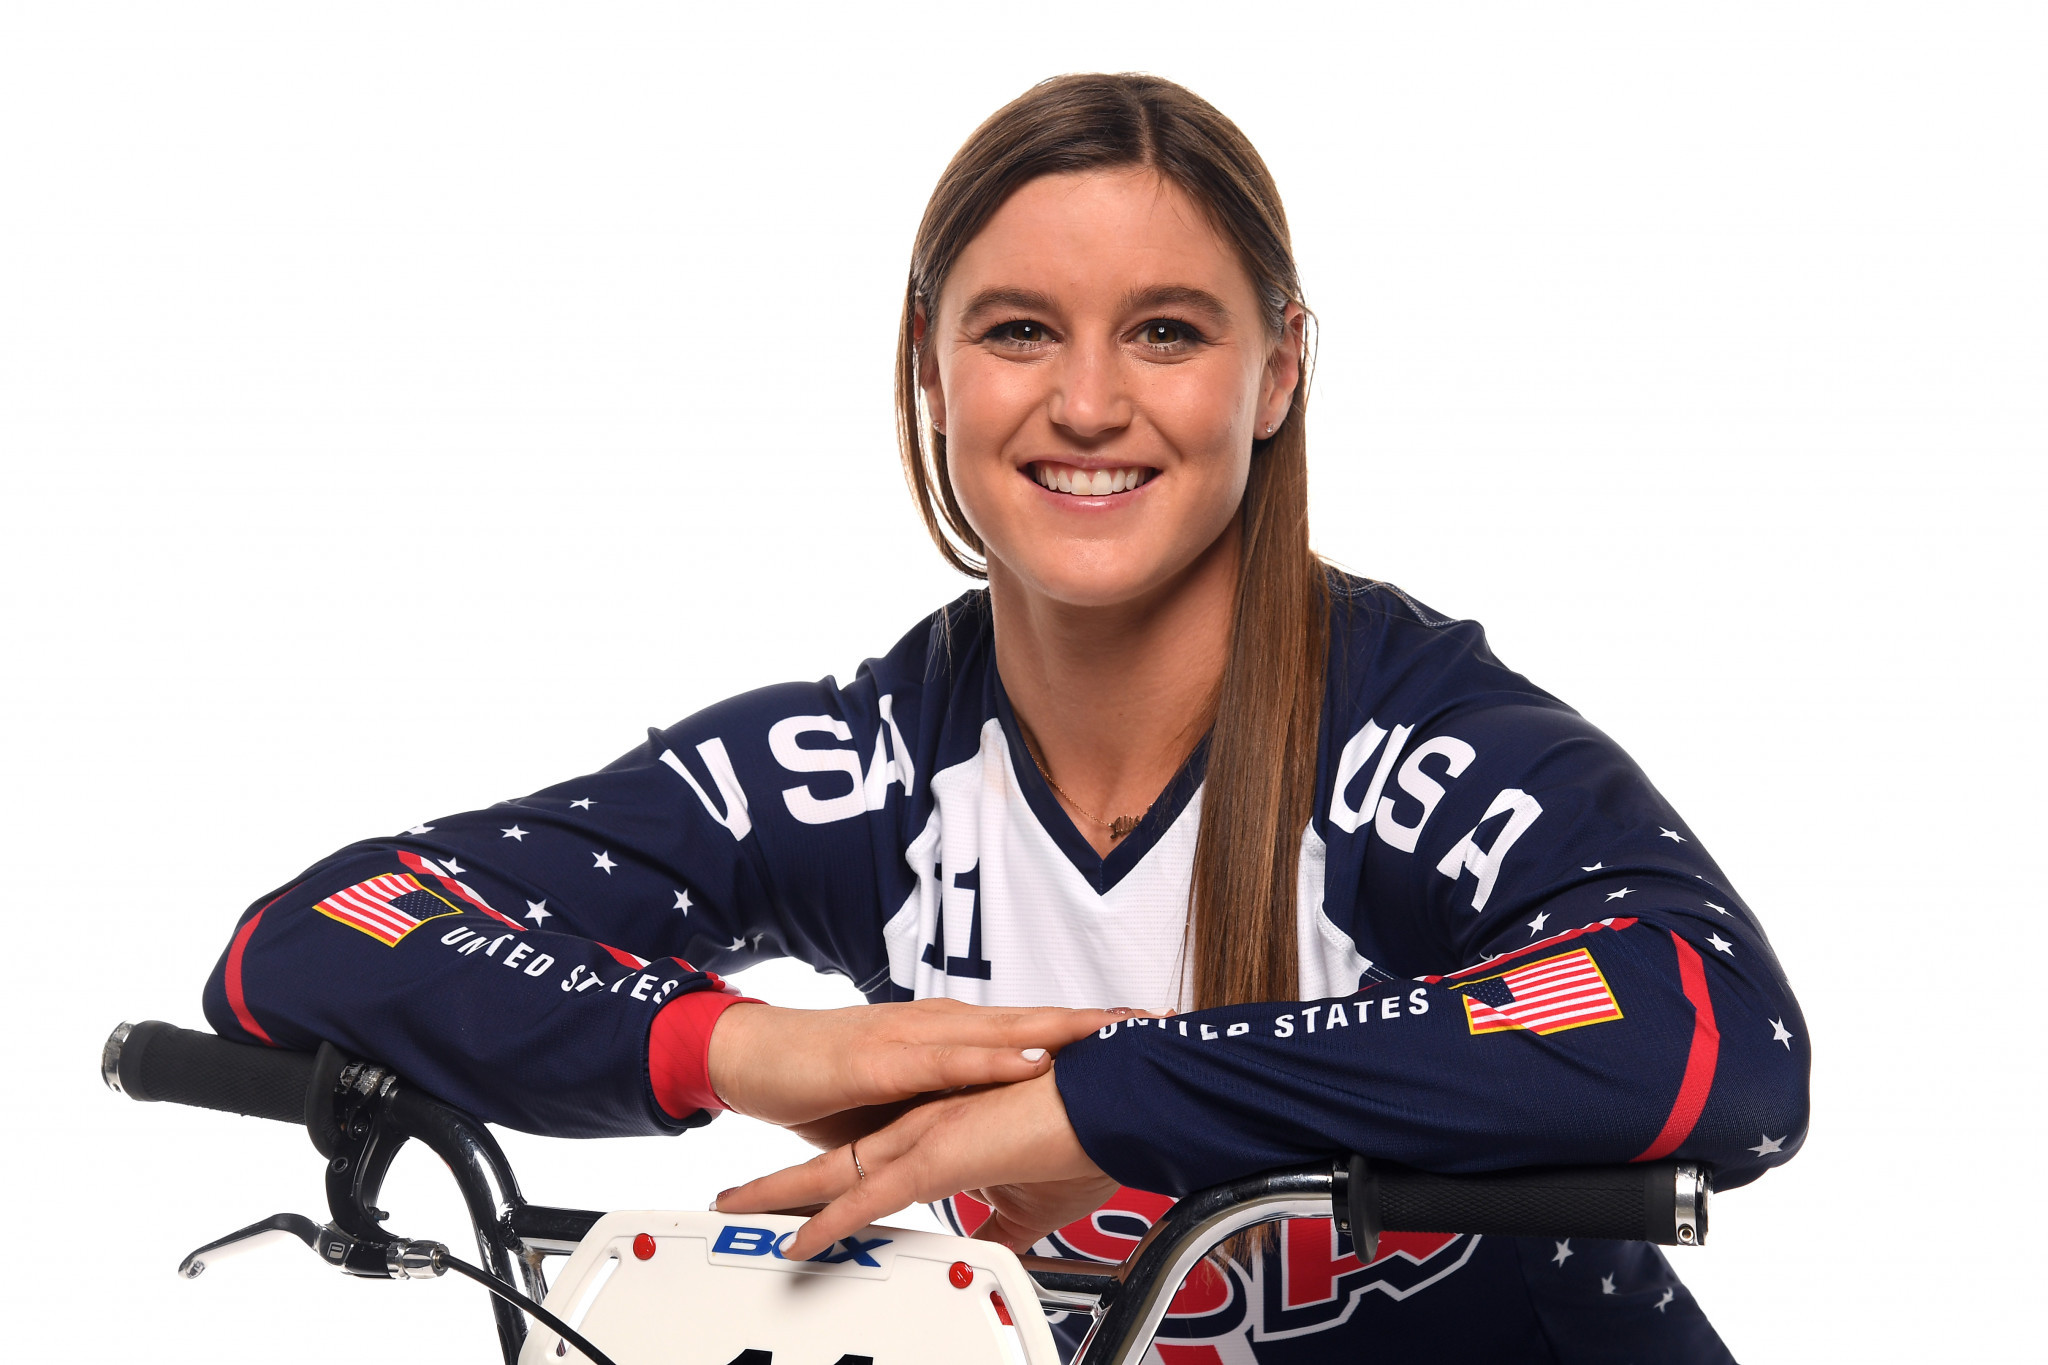 Willoughby aims for third win as UCI BMX Supercross World Cup goes to Bathurst